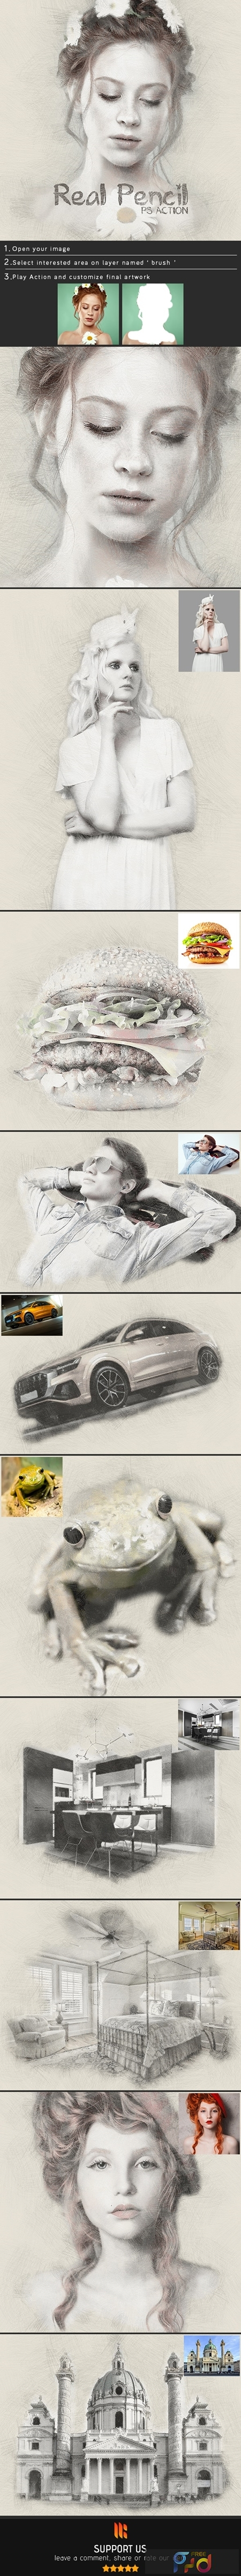 Real Pencil Photoshop Action 24968103 1